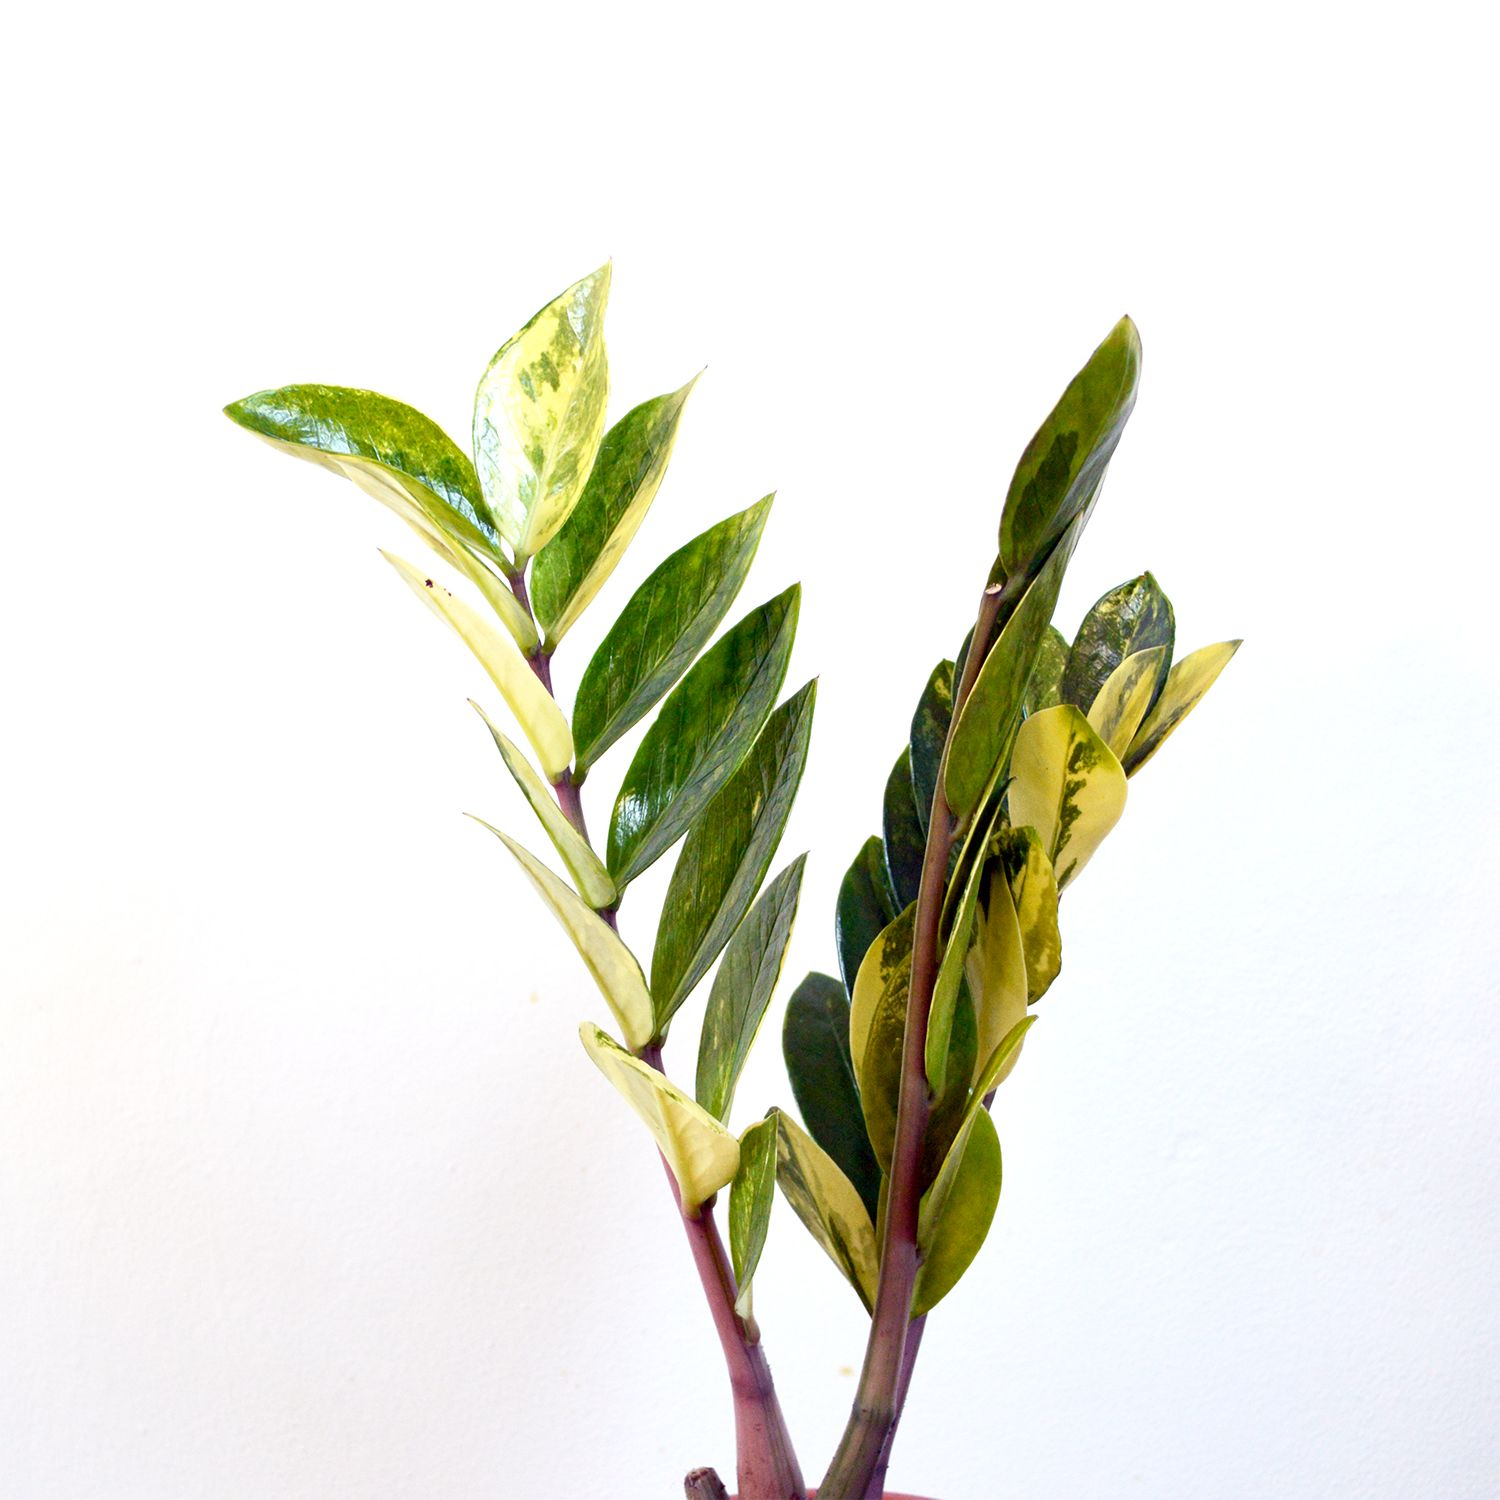 Variegated Zamioculcas ZZ Plant | Viherkasvit | Plants, Zz ... on order birds of paradise plant, zamiifolia house plant, spider house plant, fig house plant, houseplants plant, croton house plant, banana house plant, cast iron plant, rubber house plant, hydrangea house plant, peperomia house plant, fern house plant, zi zi plant, arrowhead house plant, umbrella house plant, avocado house plant, eternity plant, house plant identification succulent plant,